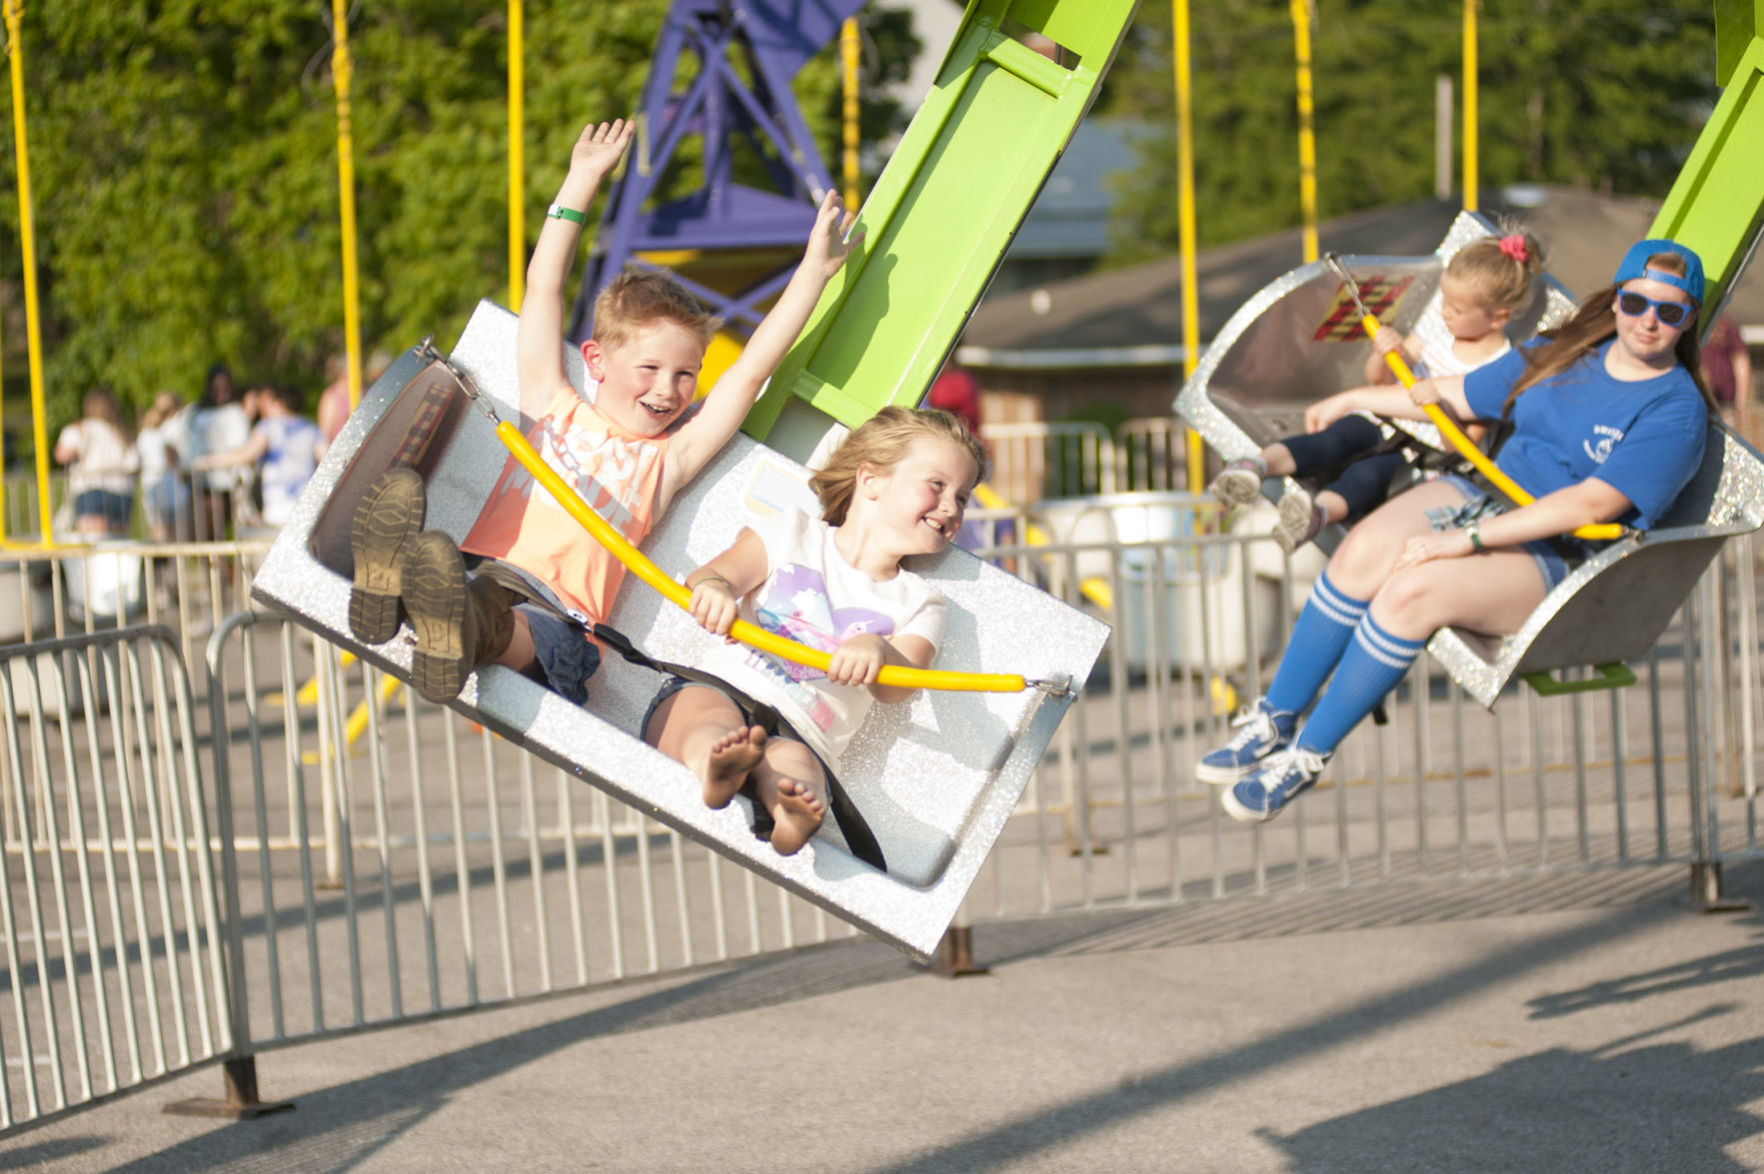 Pell City enjoys annual Hometown Block Party (photo gallery)